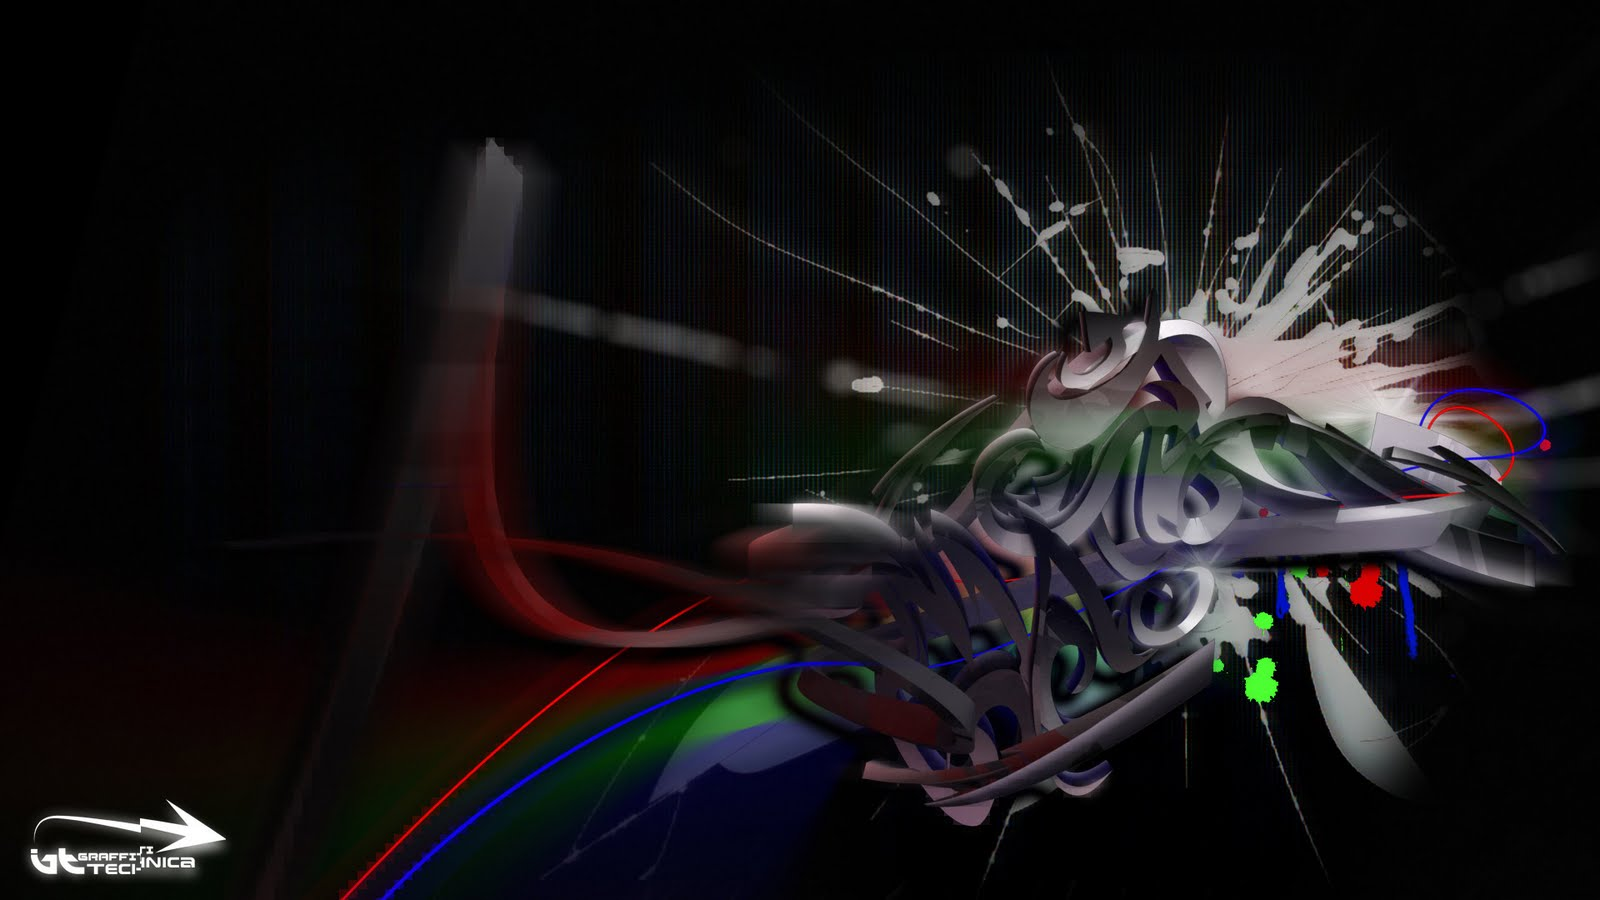 3D Graffiti Wallpapers HD| HD Wallpapers ,Backgrounds ,Photos